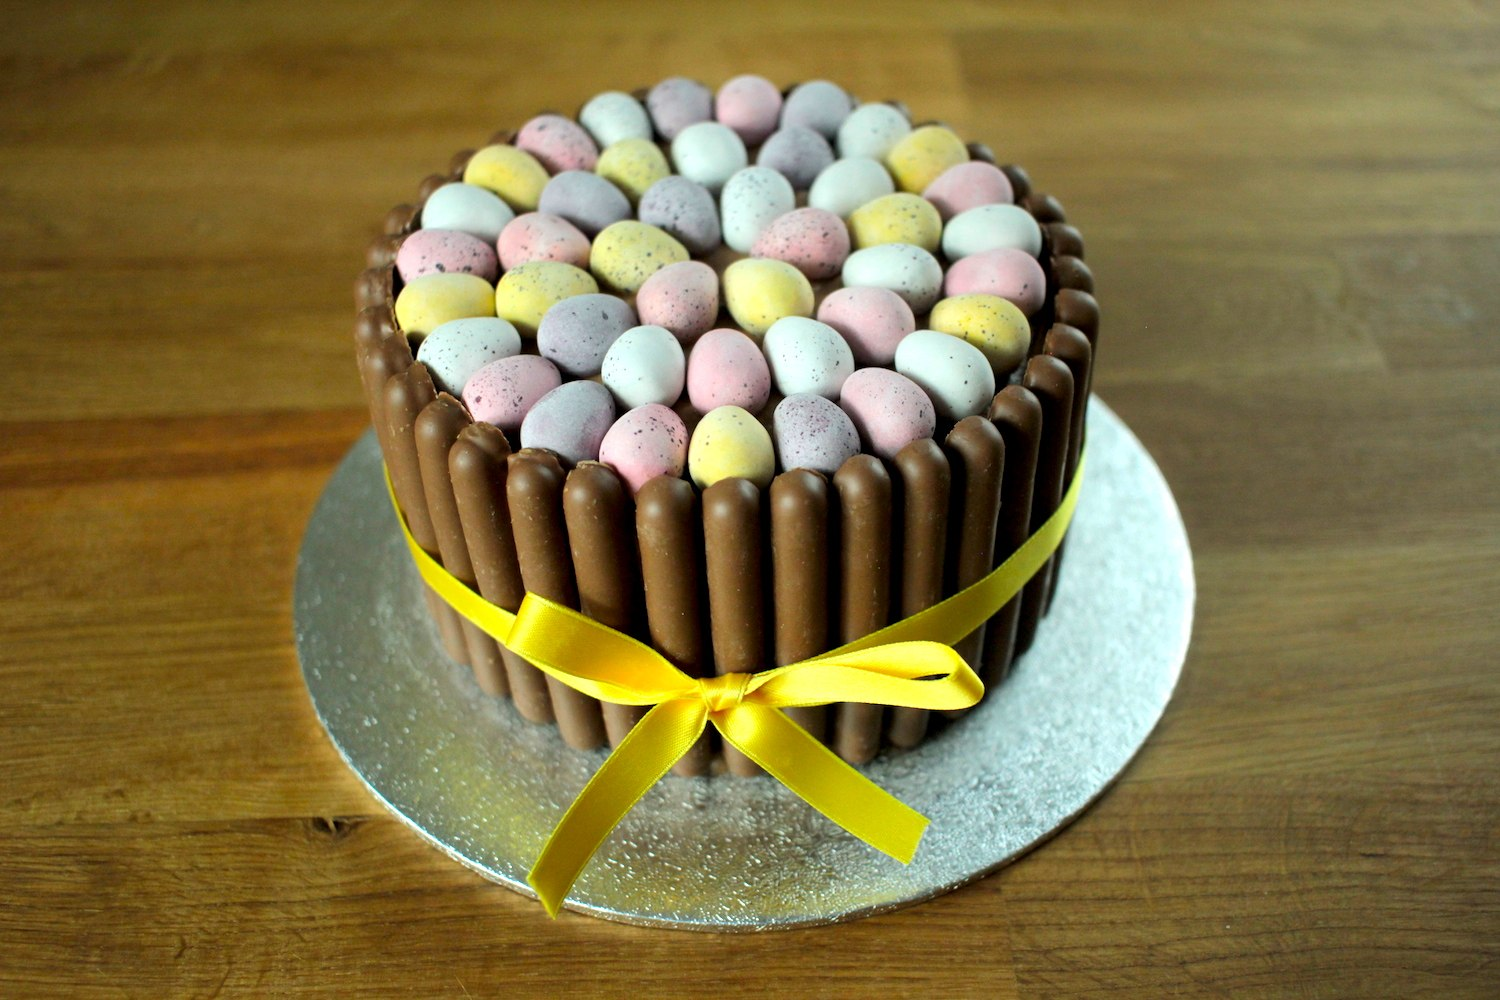 Mini Egg Easter Chocolate Cake Recipe - Globe Scoffers | globescoffers.com